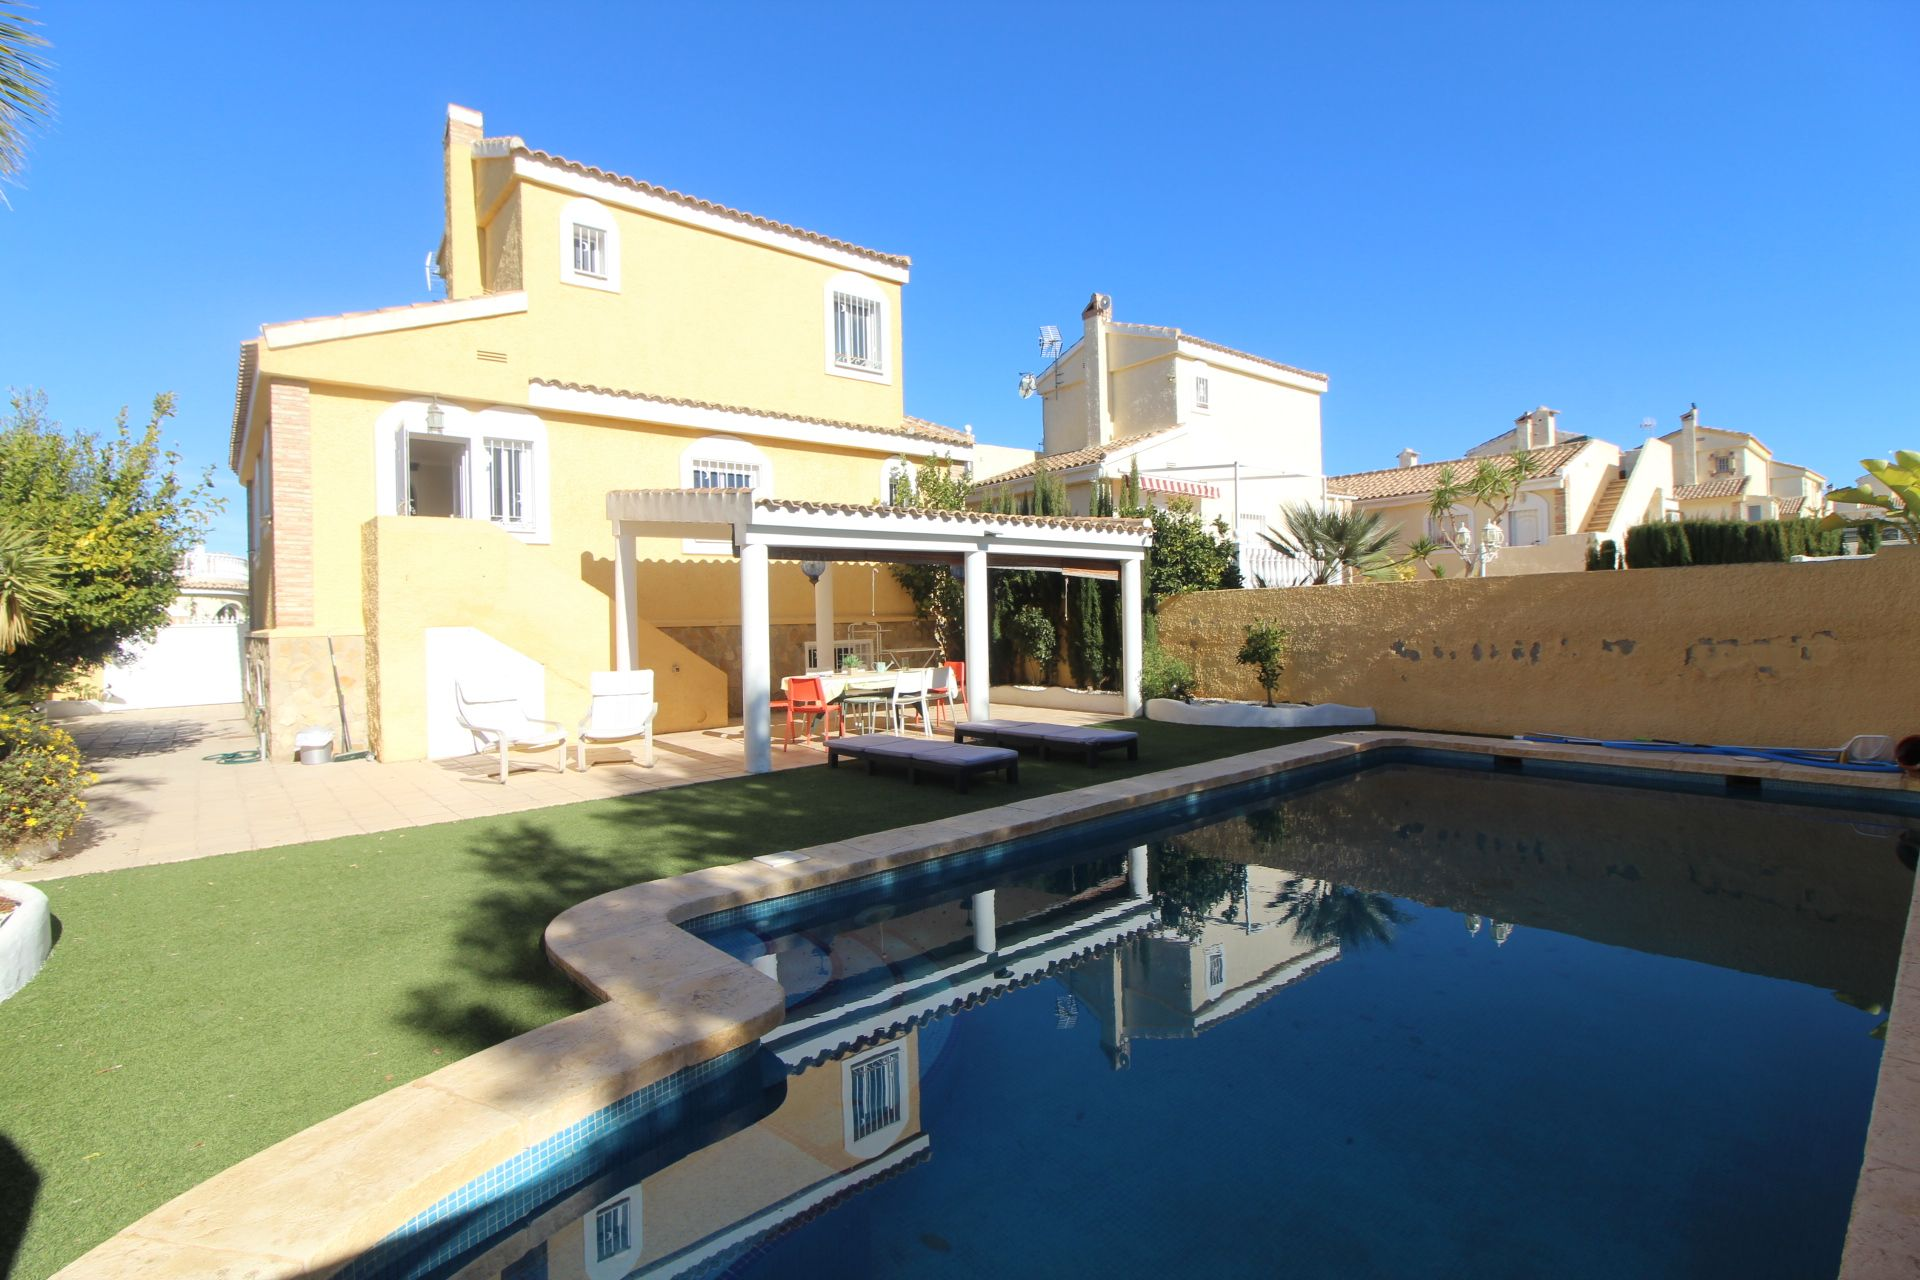 Villa in Gran Alacant, Monte y Mar Zona Baja Gran Alacant, for rent